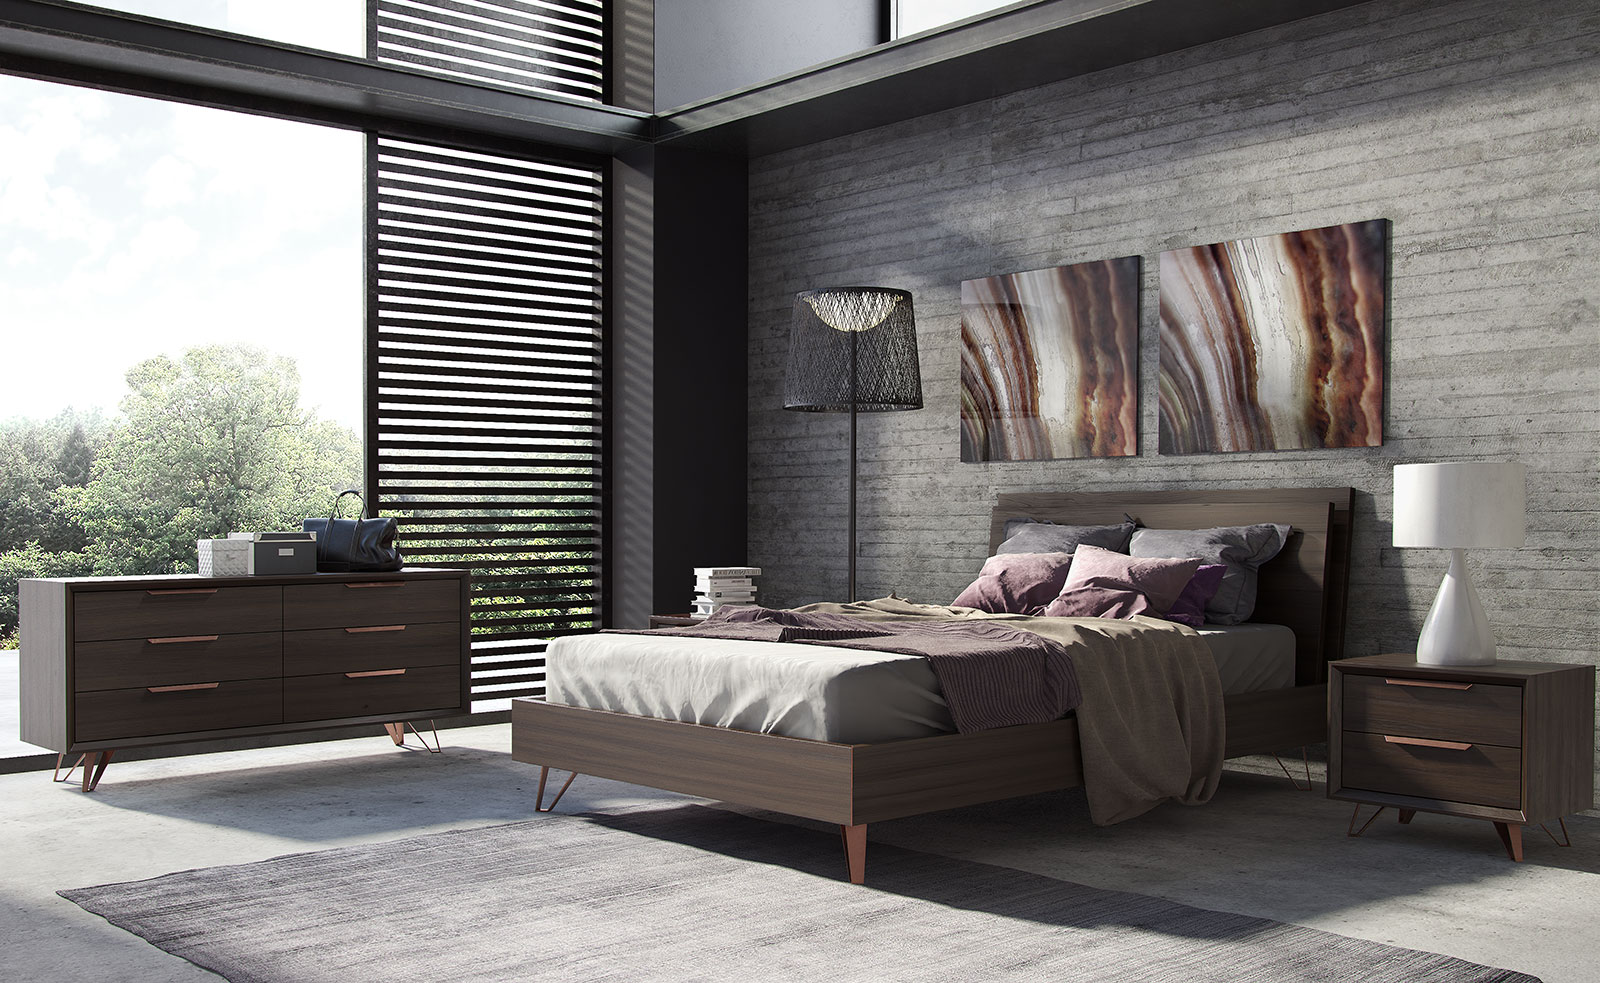 Modloft is one of the fastest growing furniture brands in the u s modloft is synonymous with modern luxury and invites consumers to revel in a contemporary